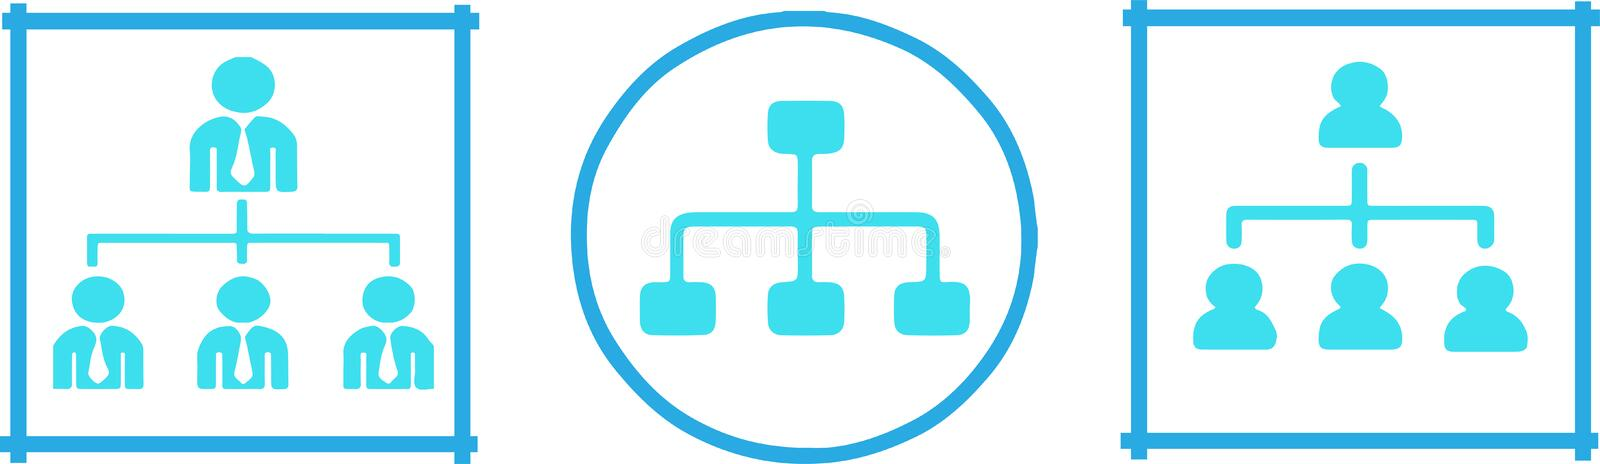 Organizational structure icon on white background.  vector illustration